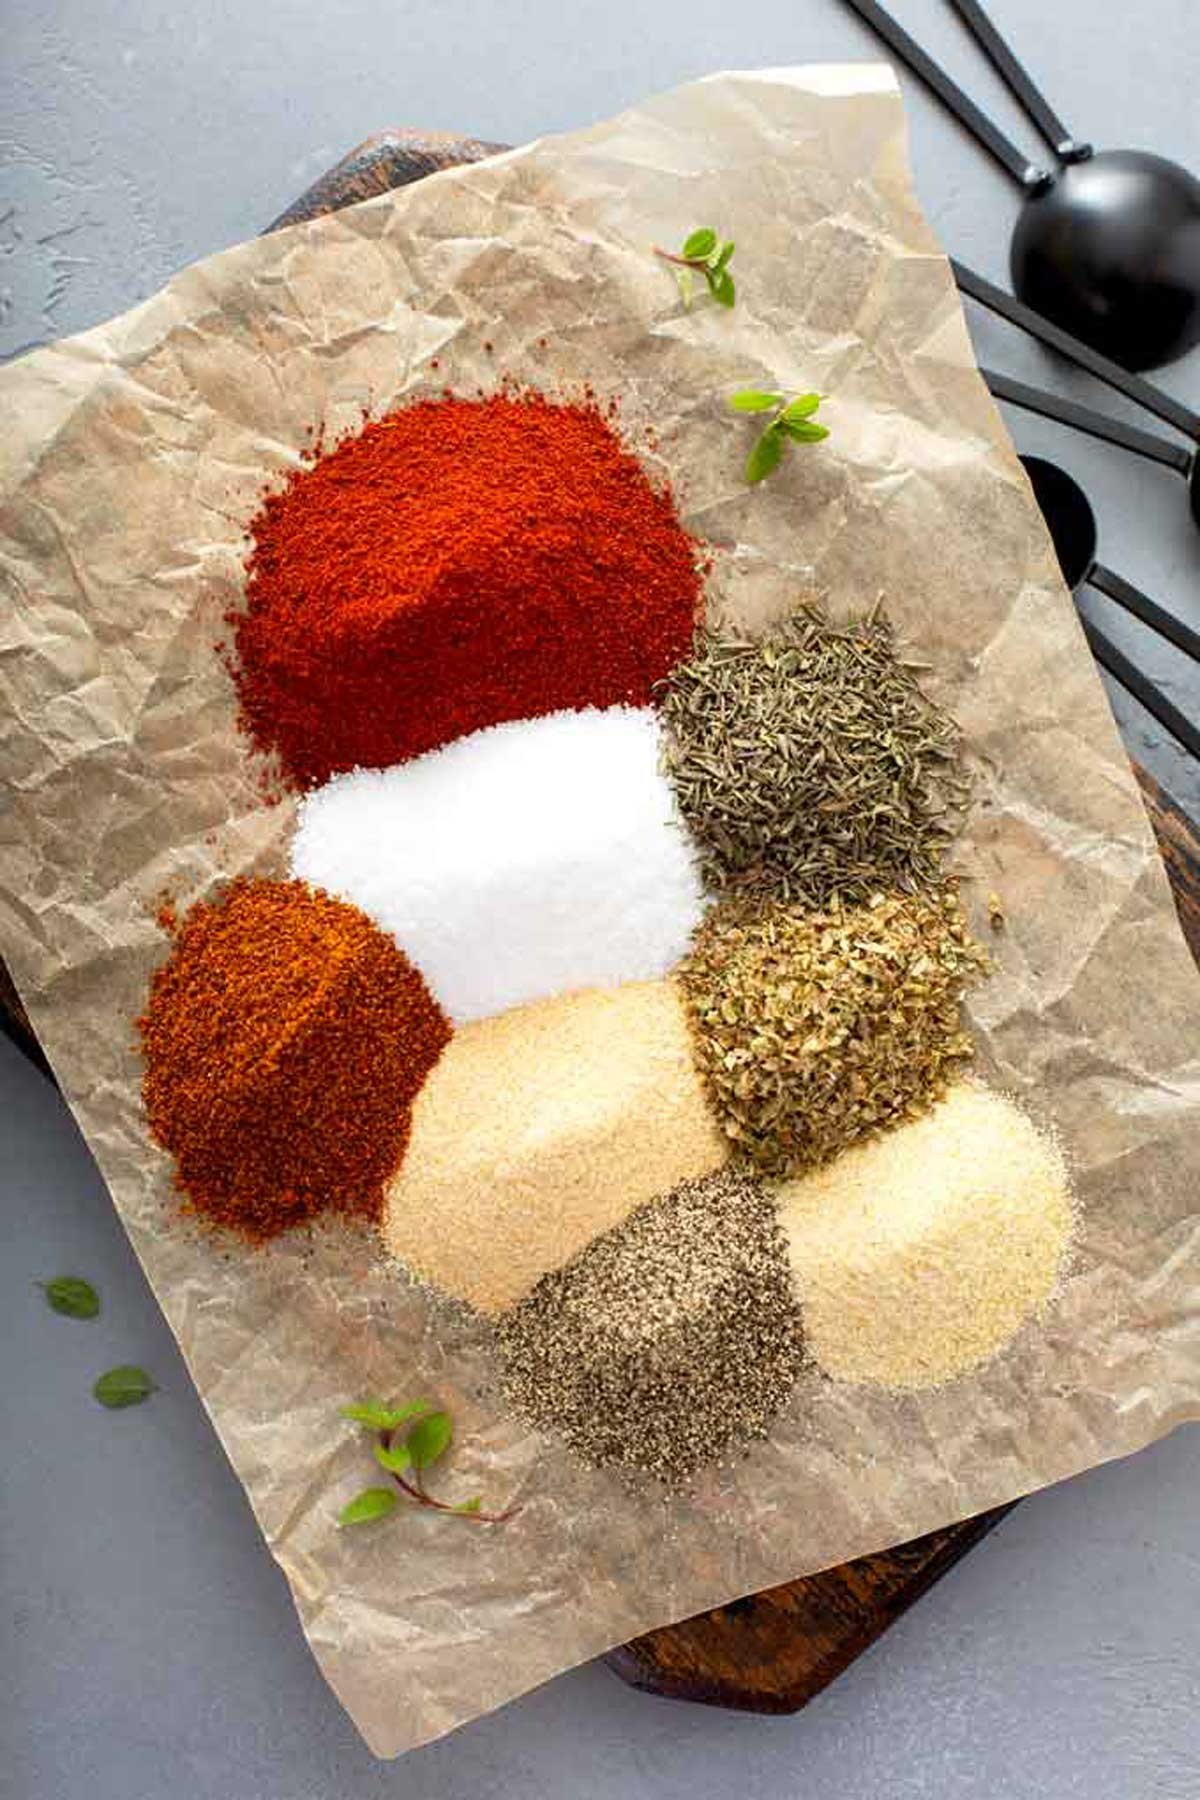 Spices to make this Cajun seasoning mix on a kraft paper.